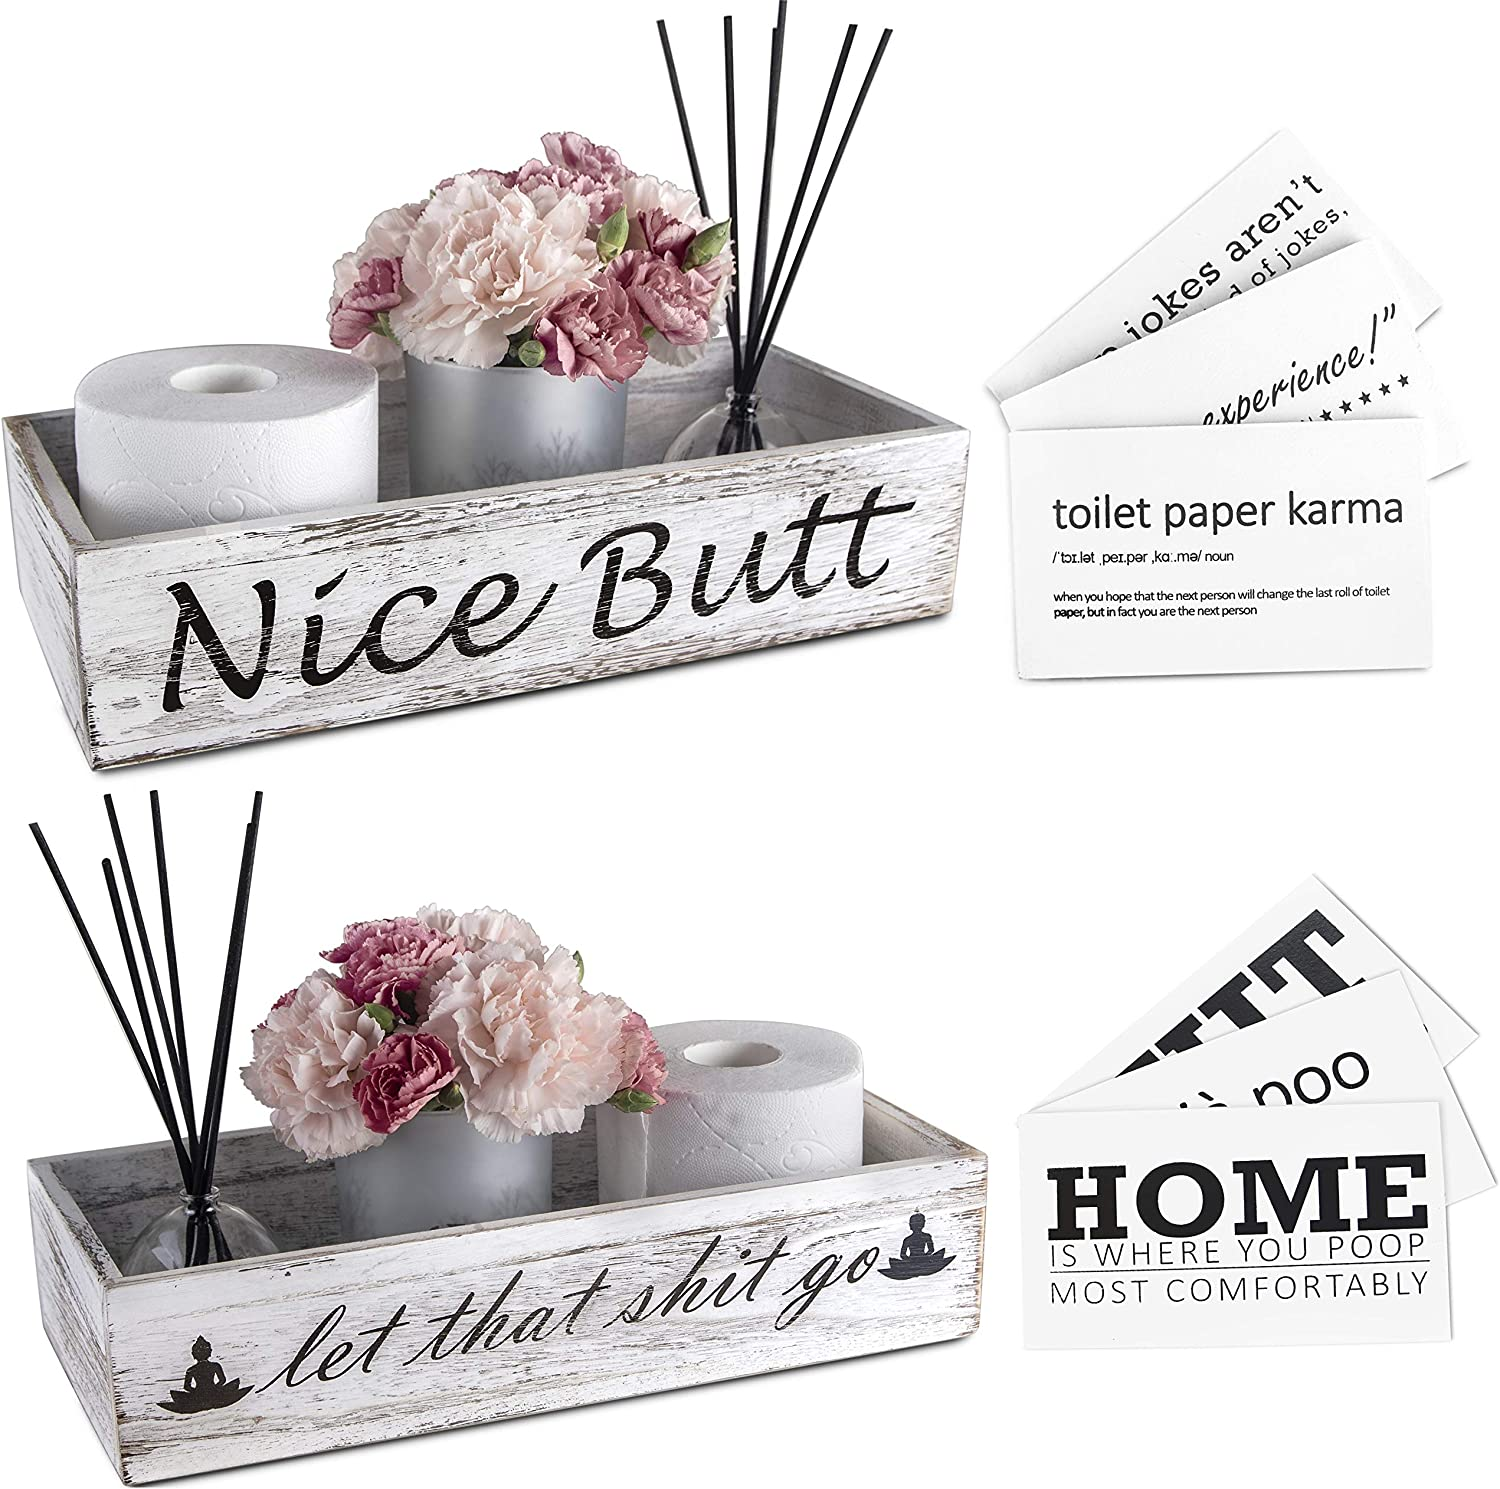 Nice Butt Bathroom Decor Box & Wall Art Signs - 2 Sides with Funny Sayings for Farmhouse Home Decor, Rustic Bathroom Decor, Toilet Paper Storage, Bathroom Signs (White)